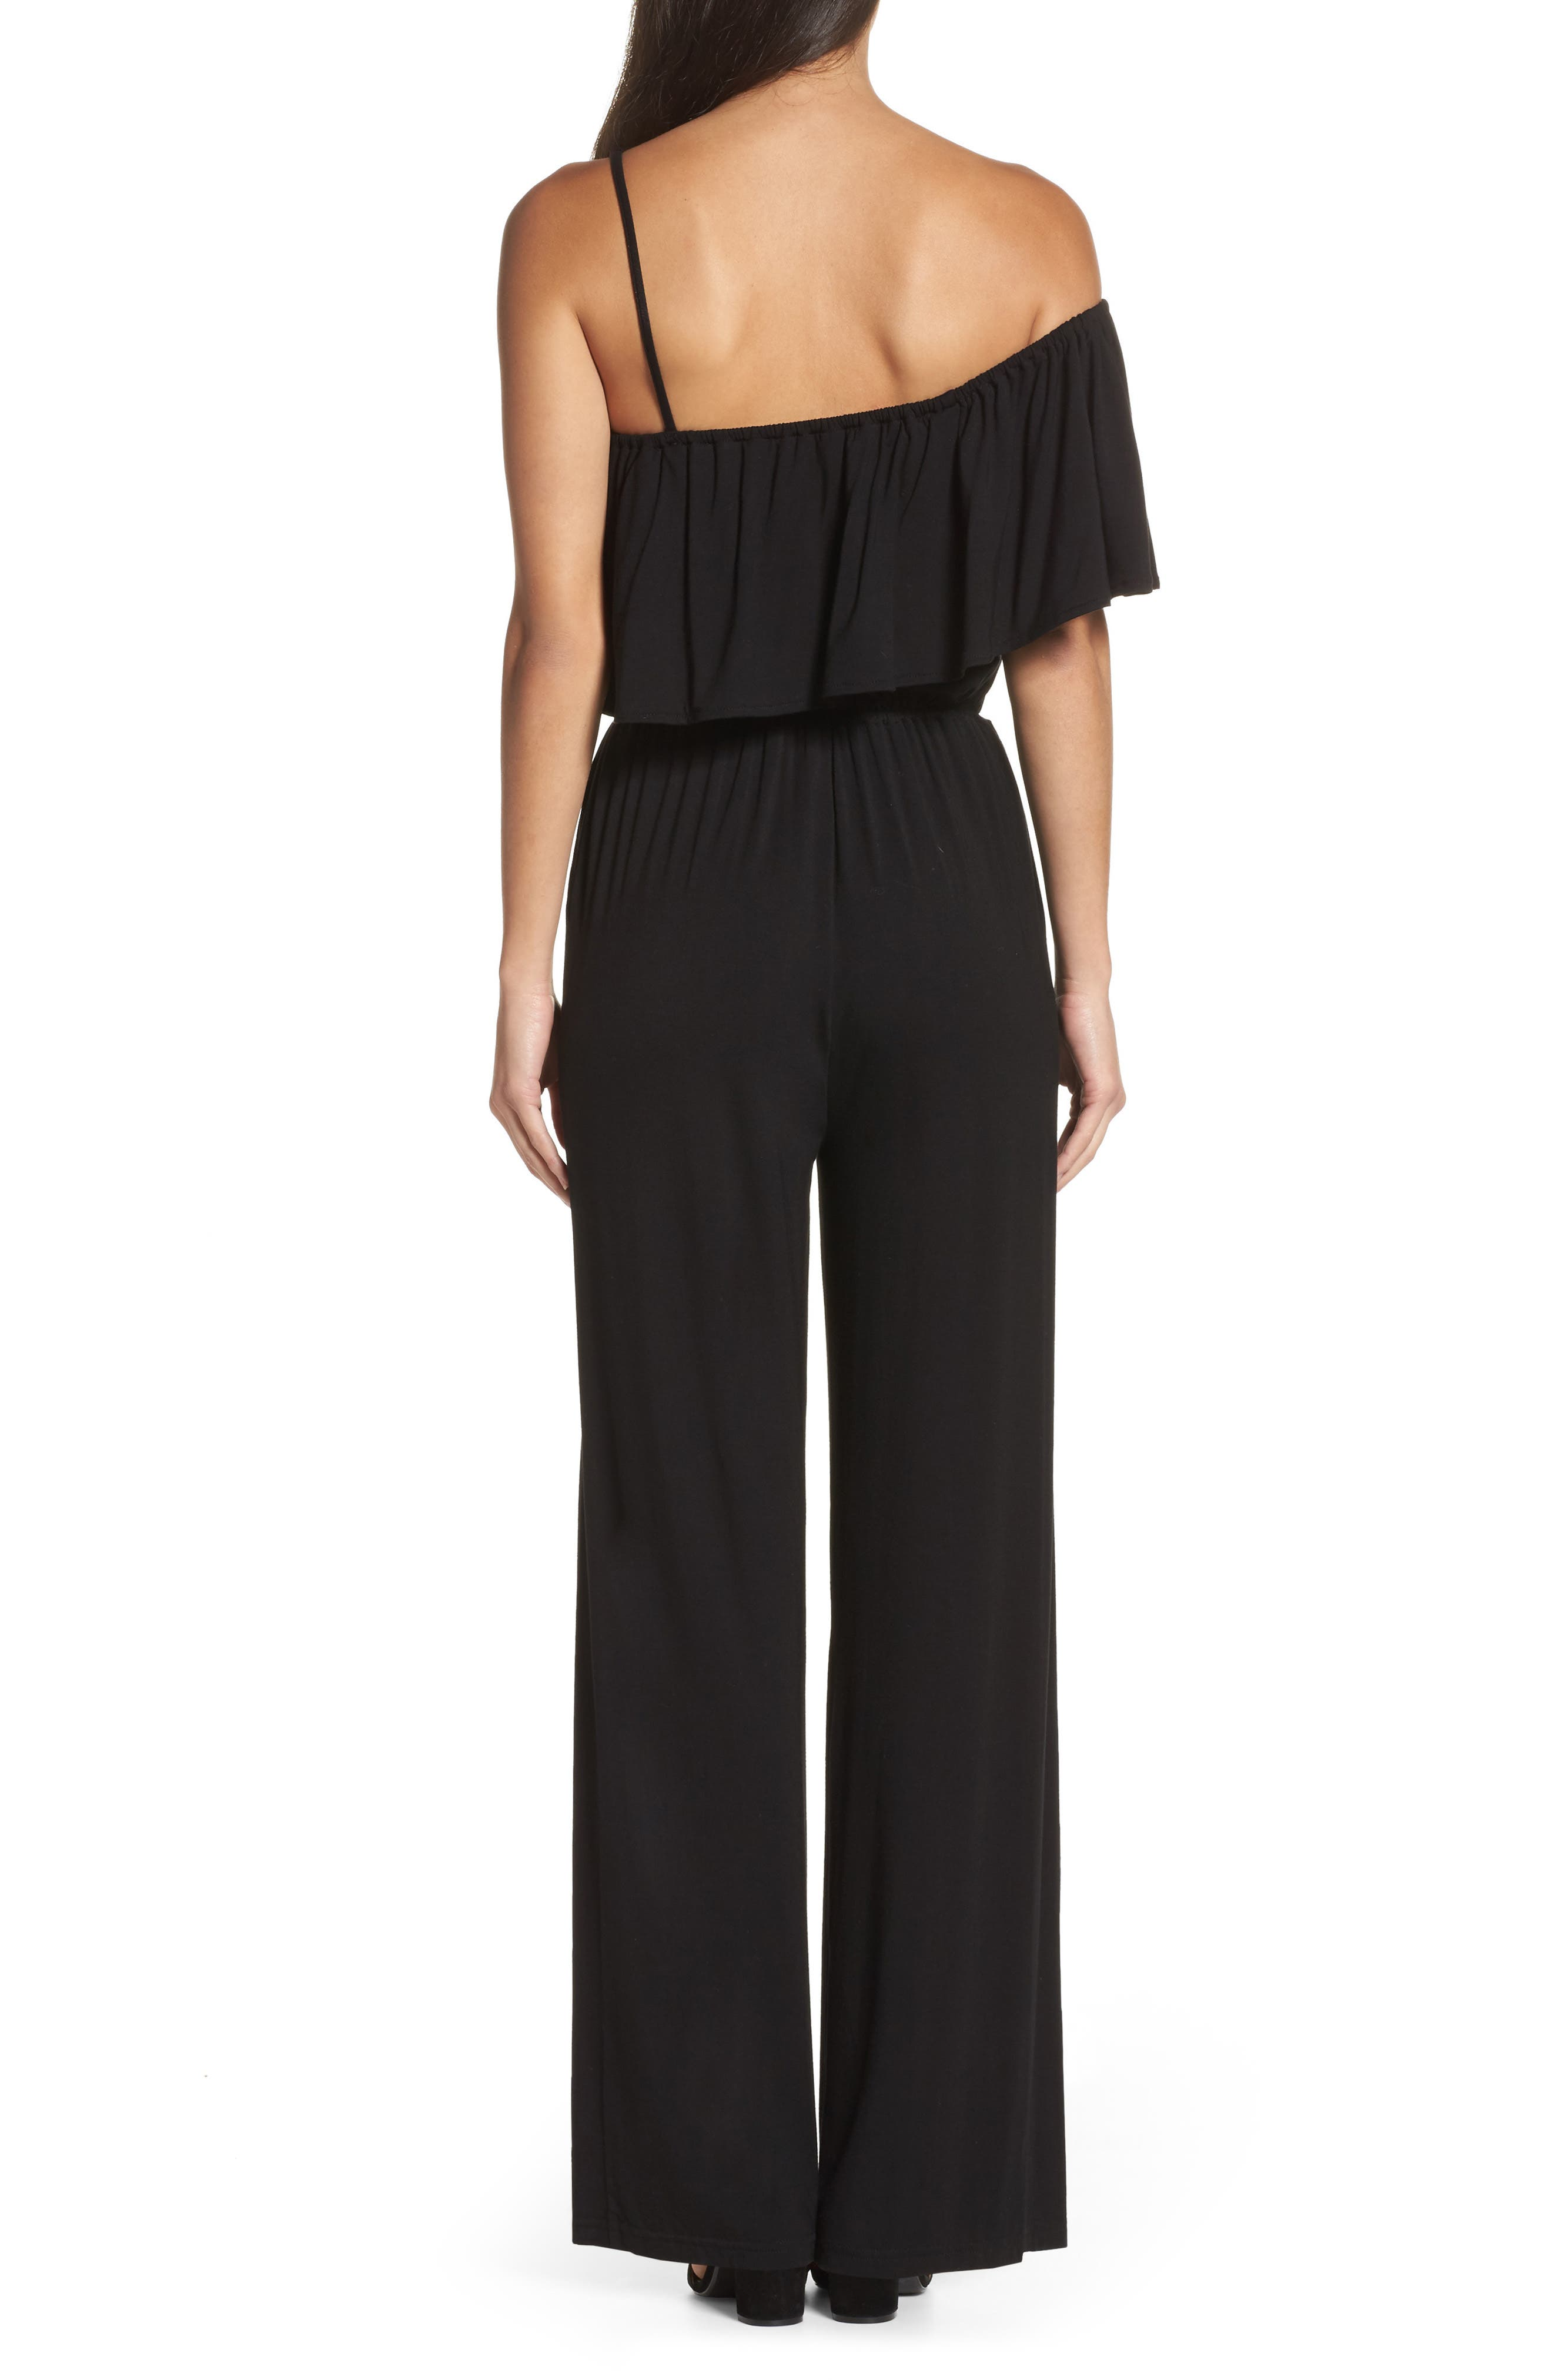 Mayana Jumpsuit,                             Alternate thumbnail 2, color,                             001